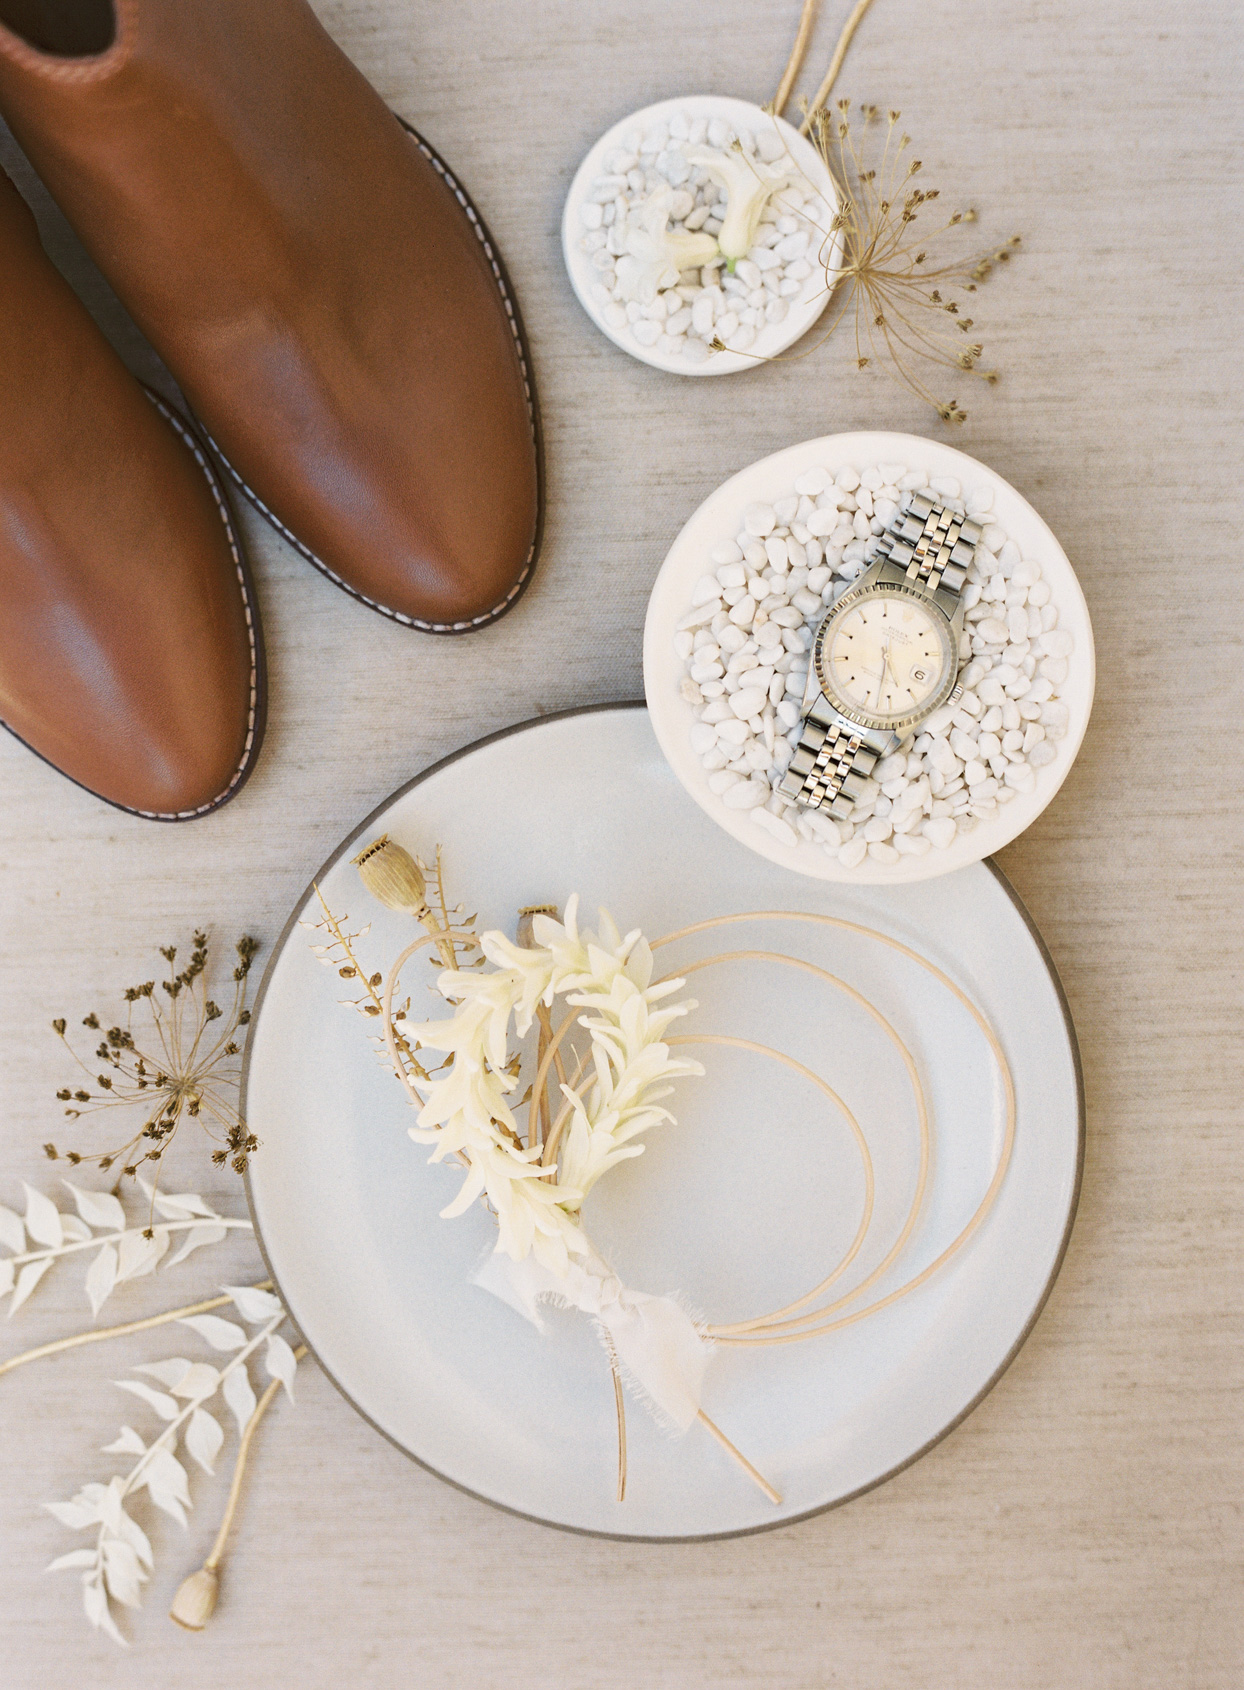 gloria's vow renewal shoes and accessories